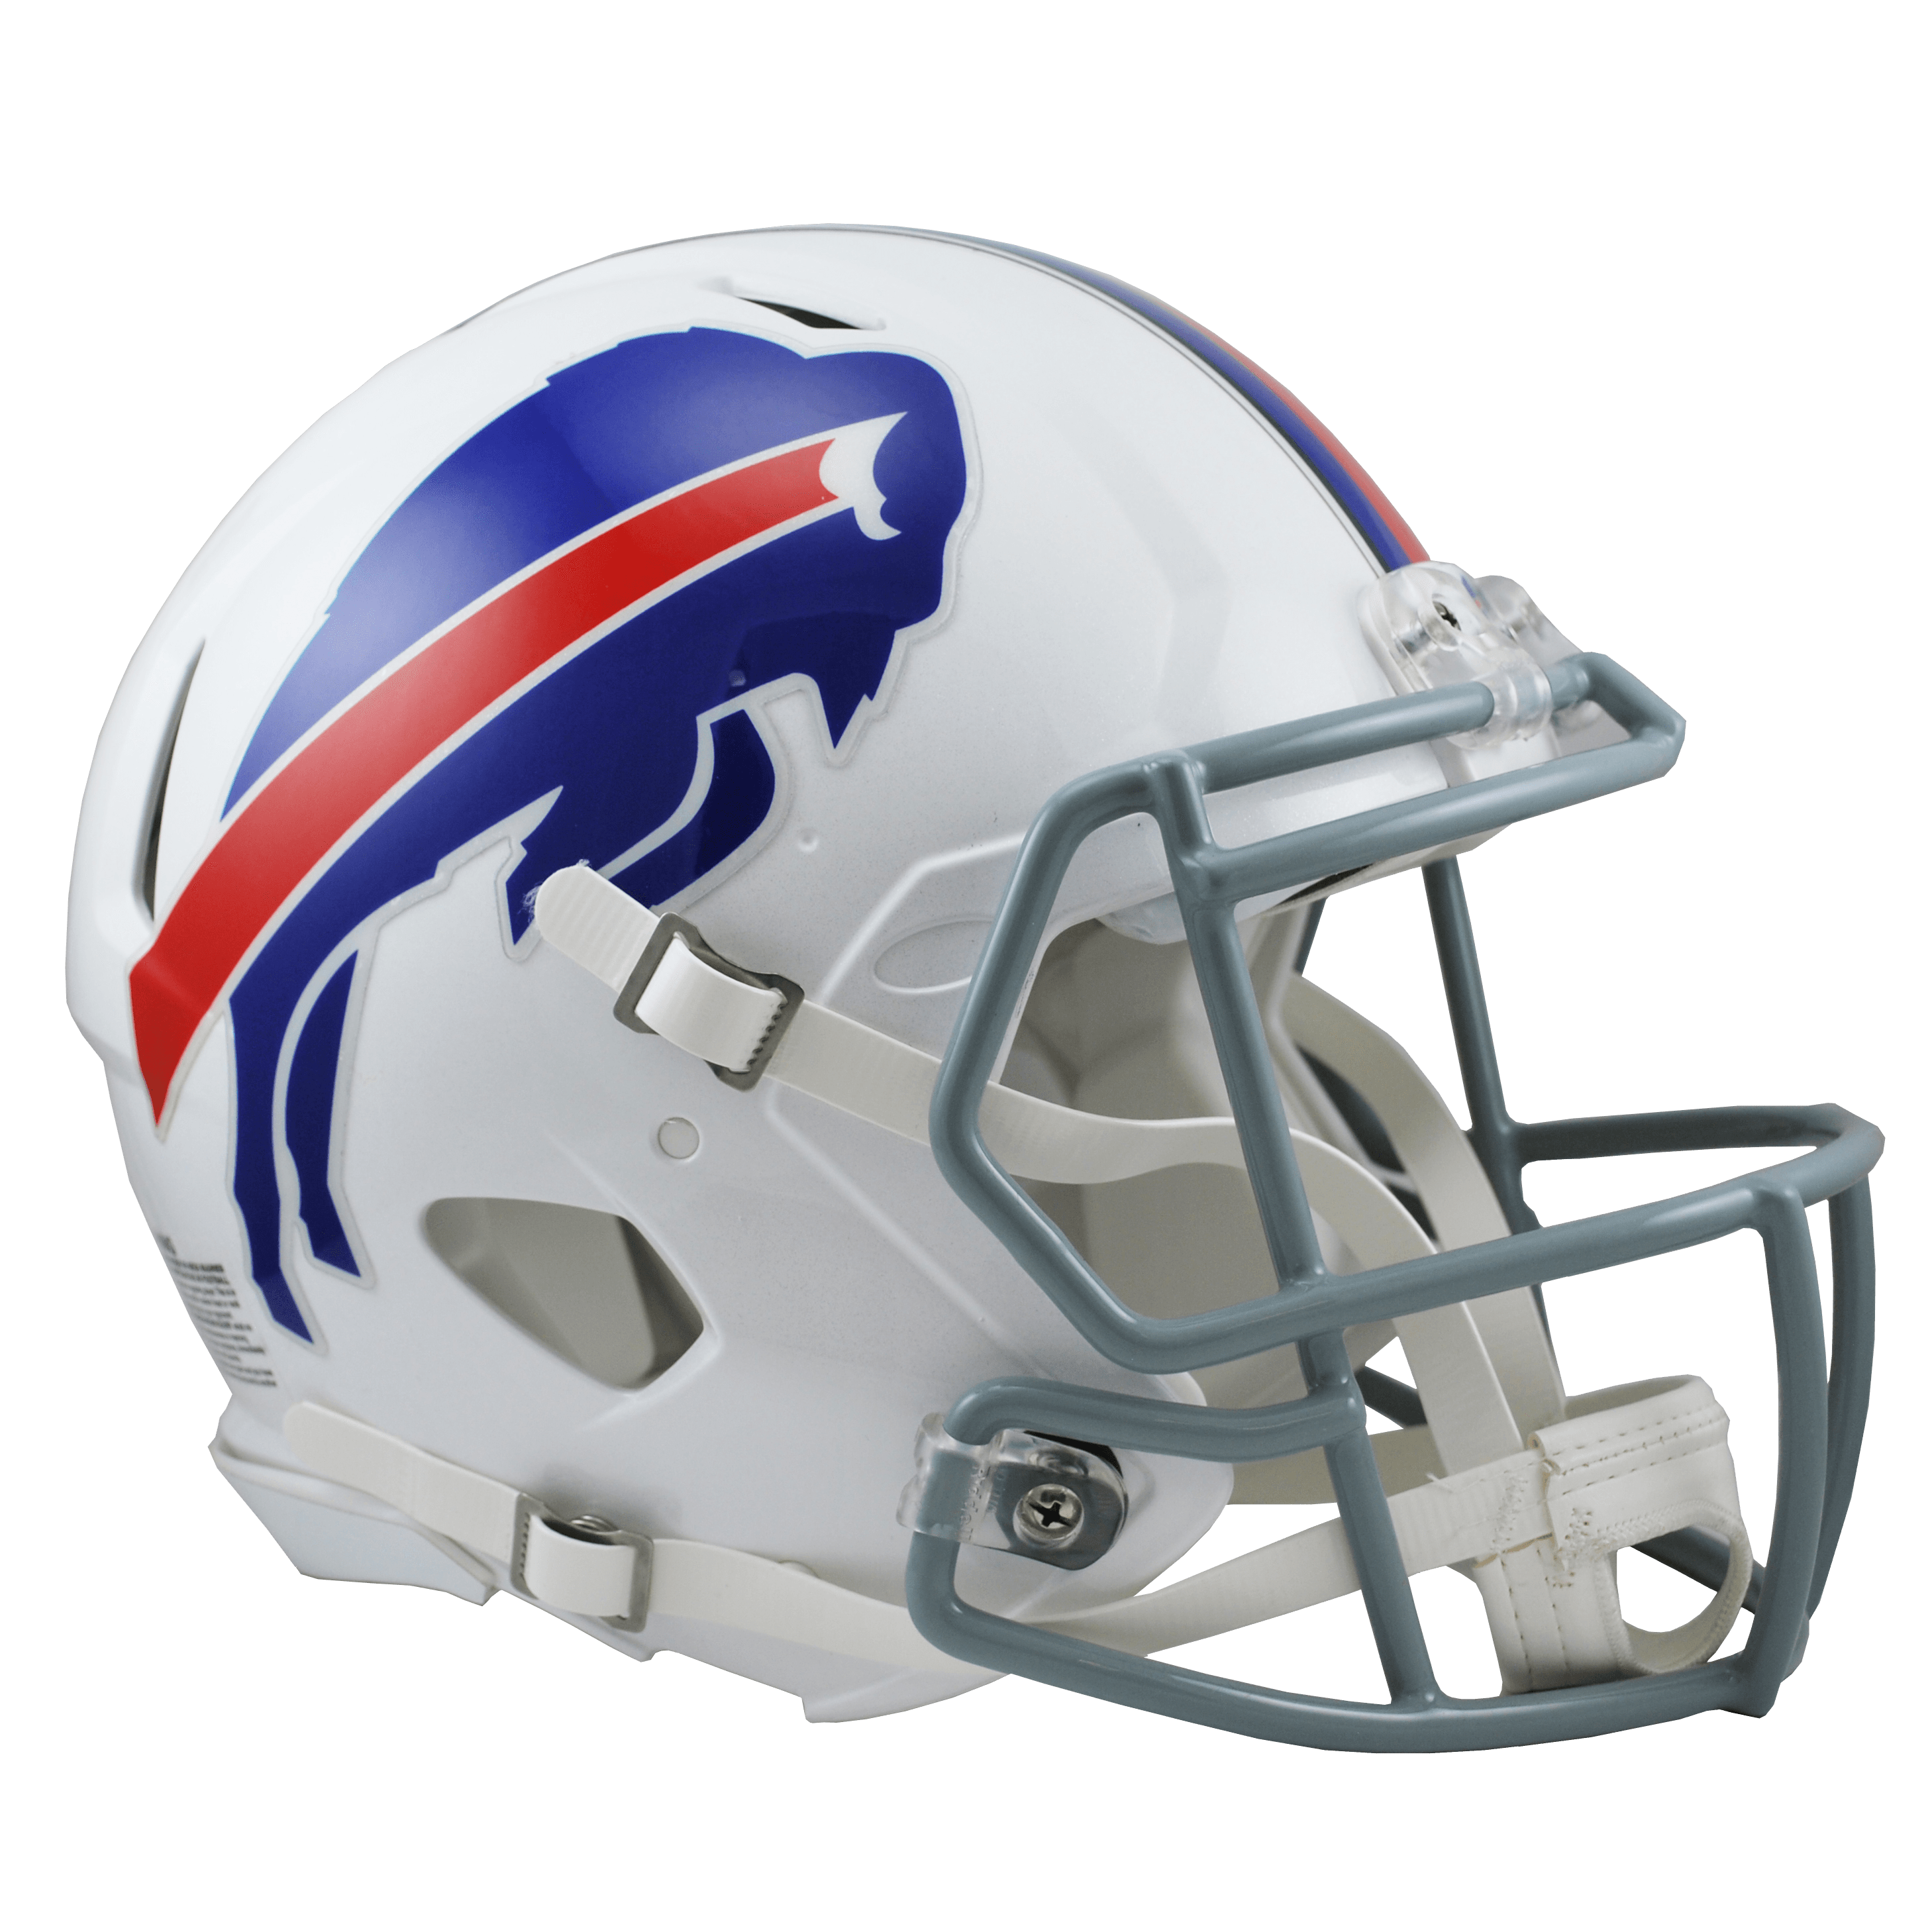 Buffalo Bills Helmet - Buffalo Bills PNG